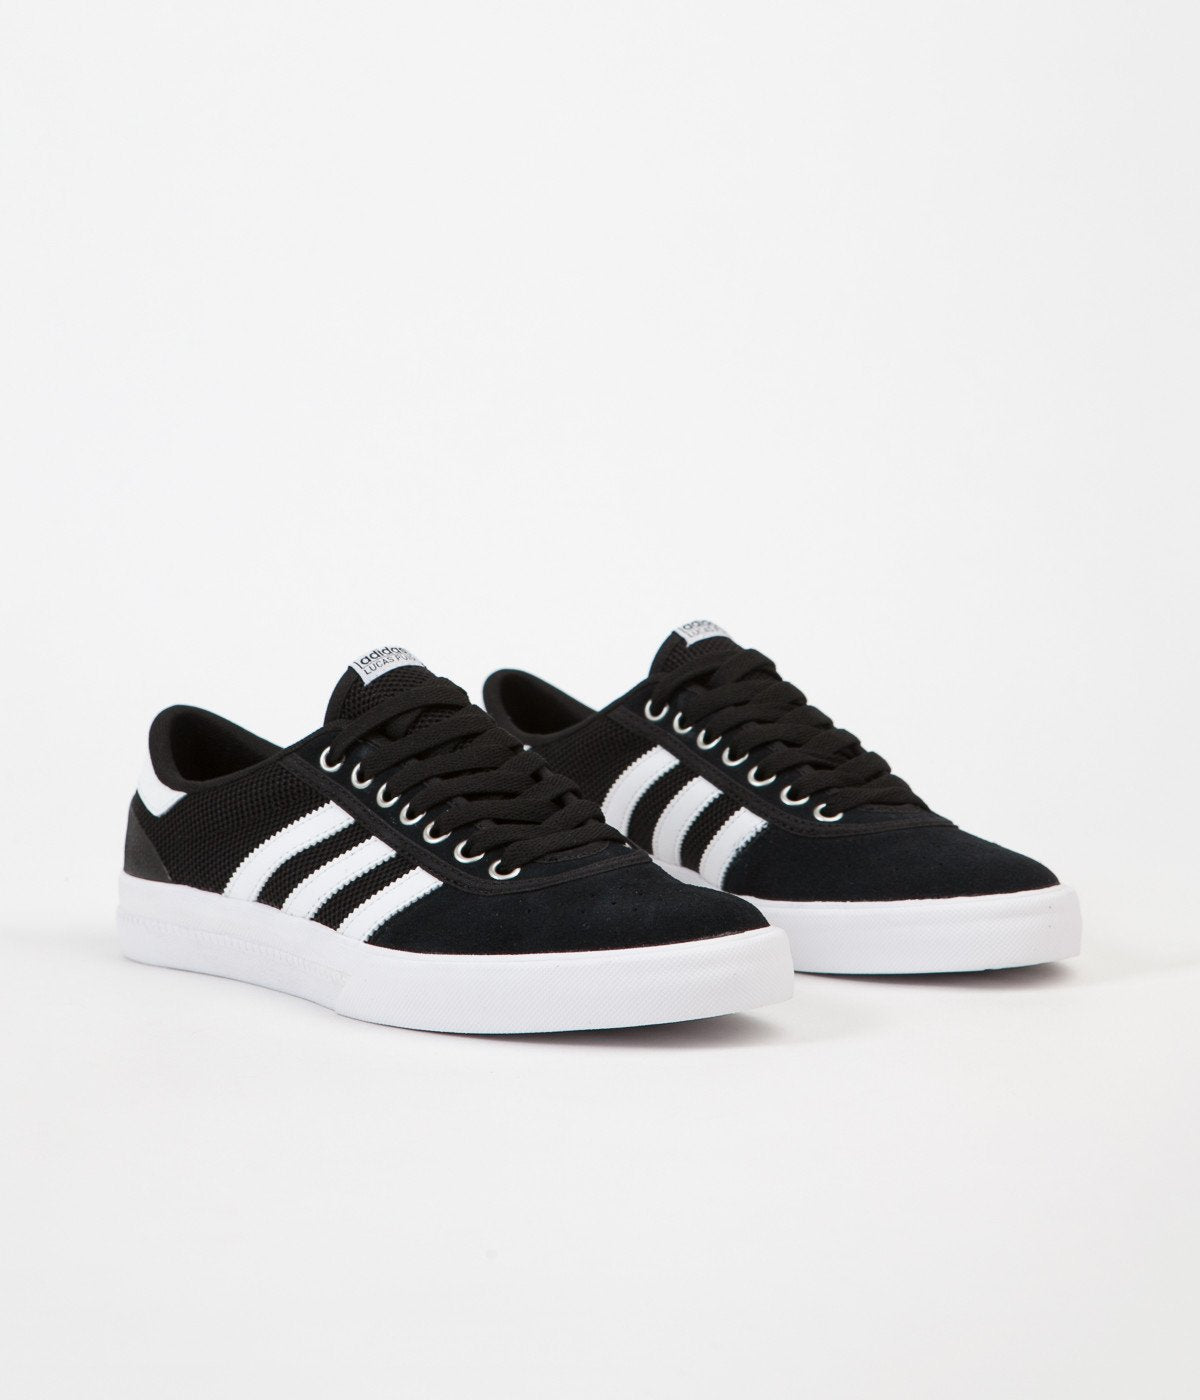 adidas sneakers black and white